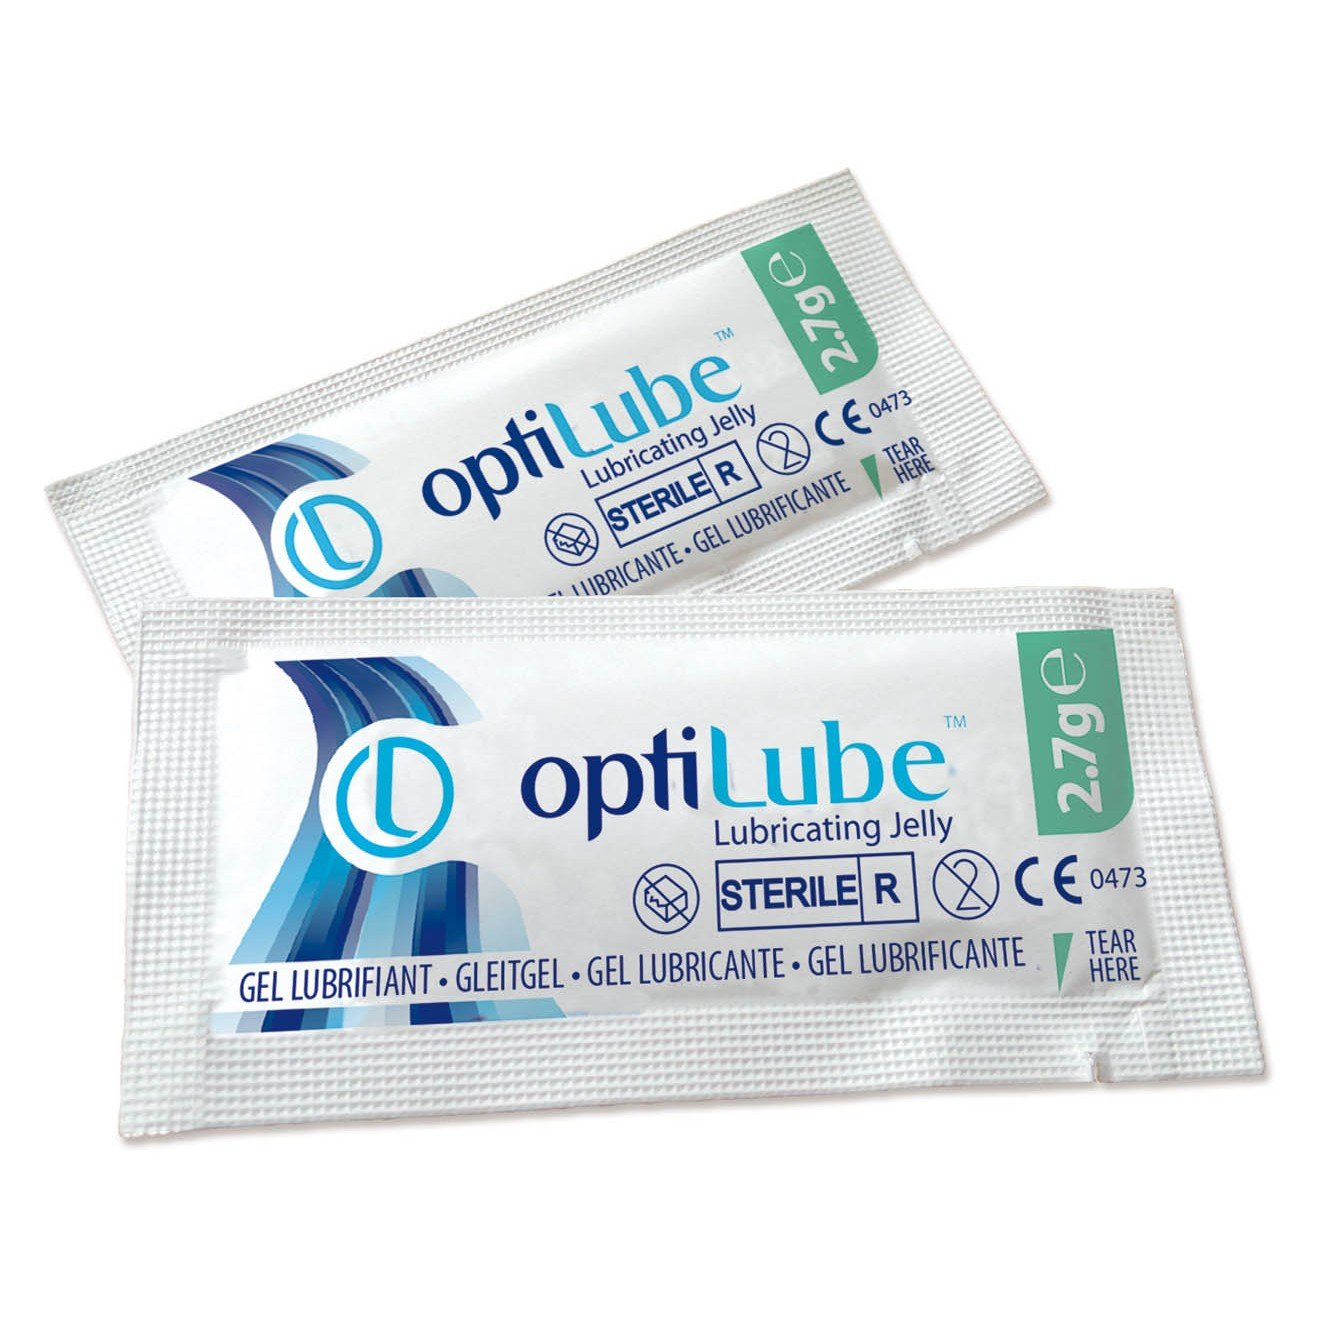 Optilube Sterile Lubricating Jelly - 5g Sachet-SINGLE NEEDLE-5-SINGLE NEEDLE Stick & Poke Tattoo